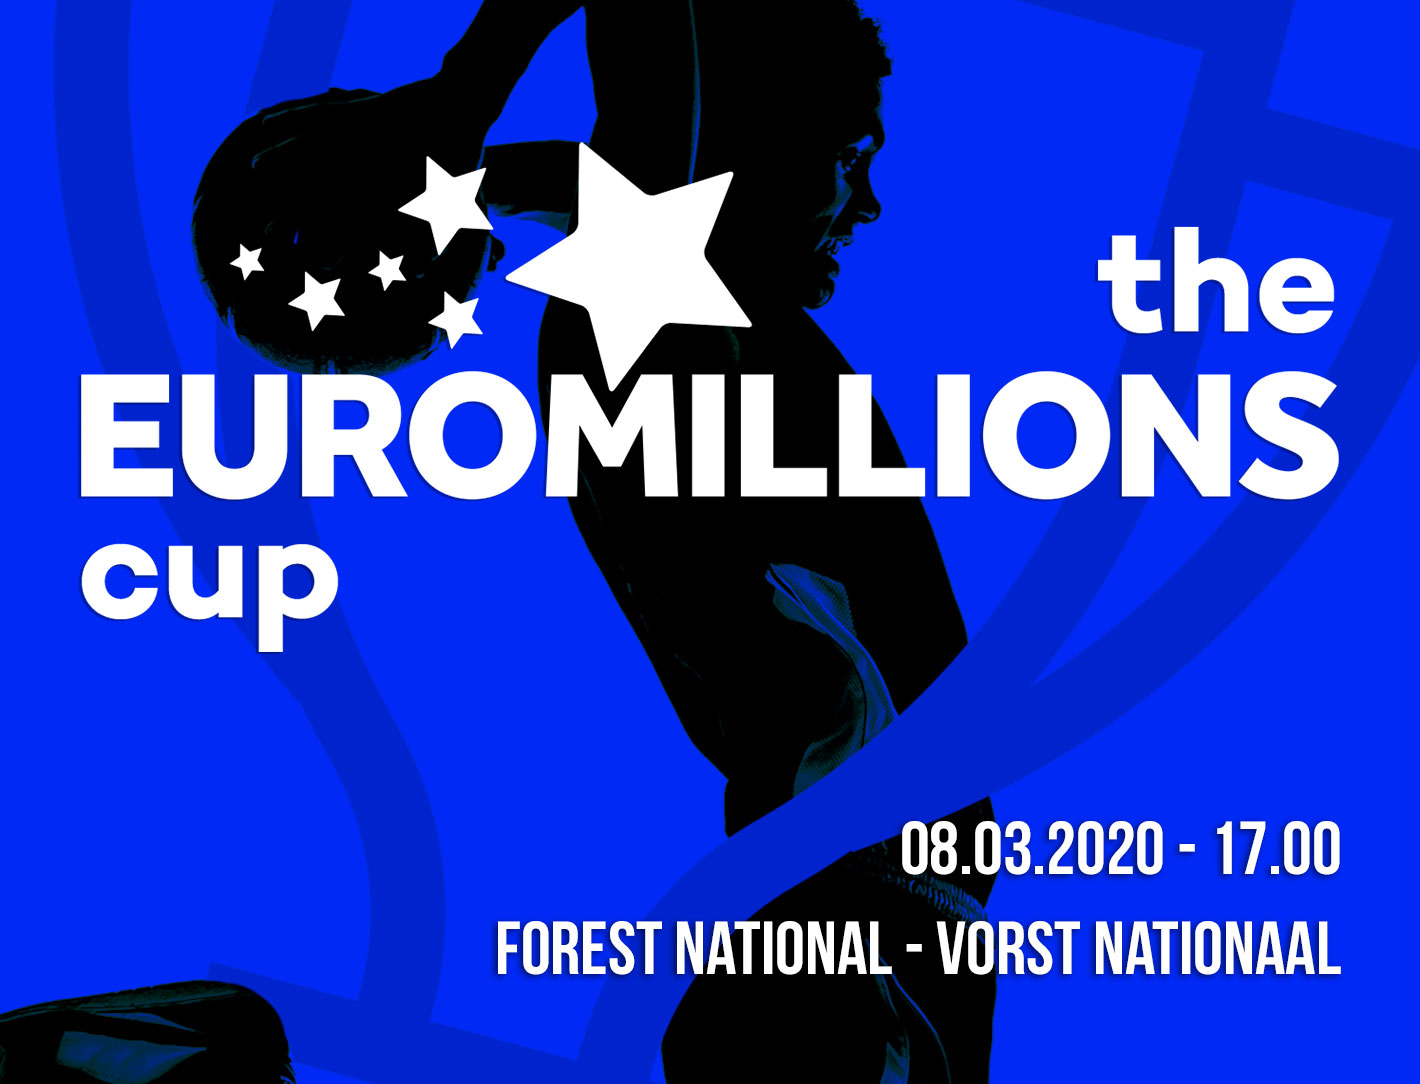 the EUROMILLIONS cup